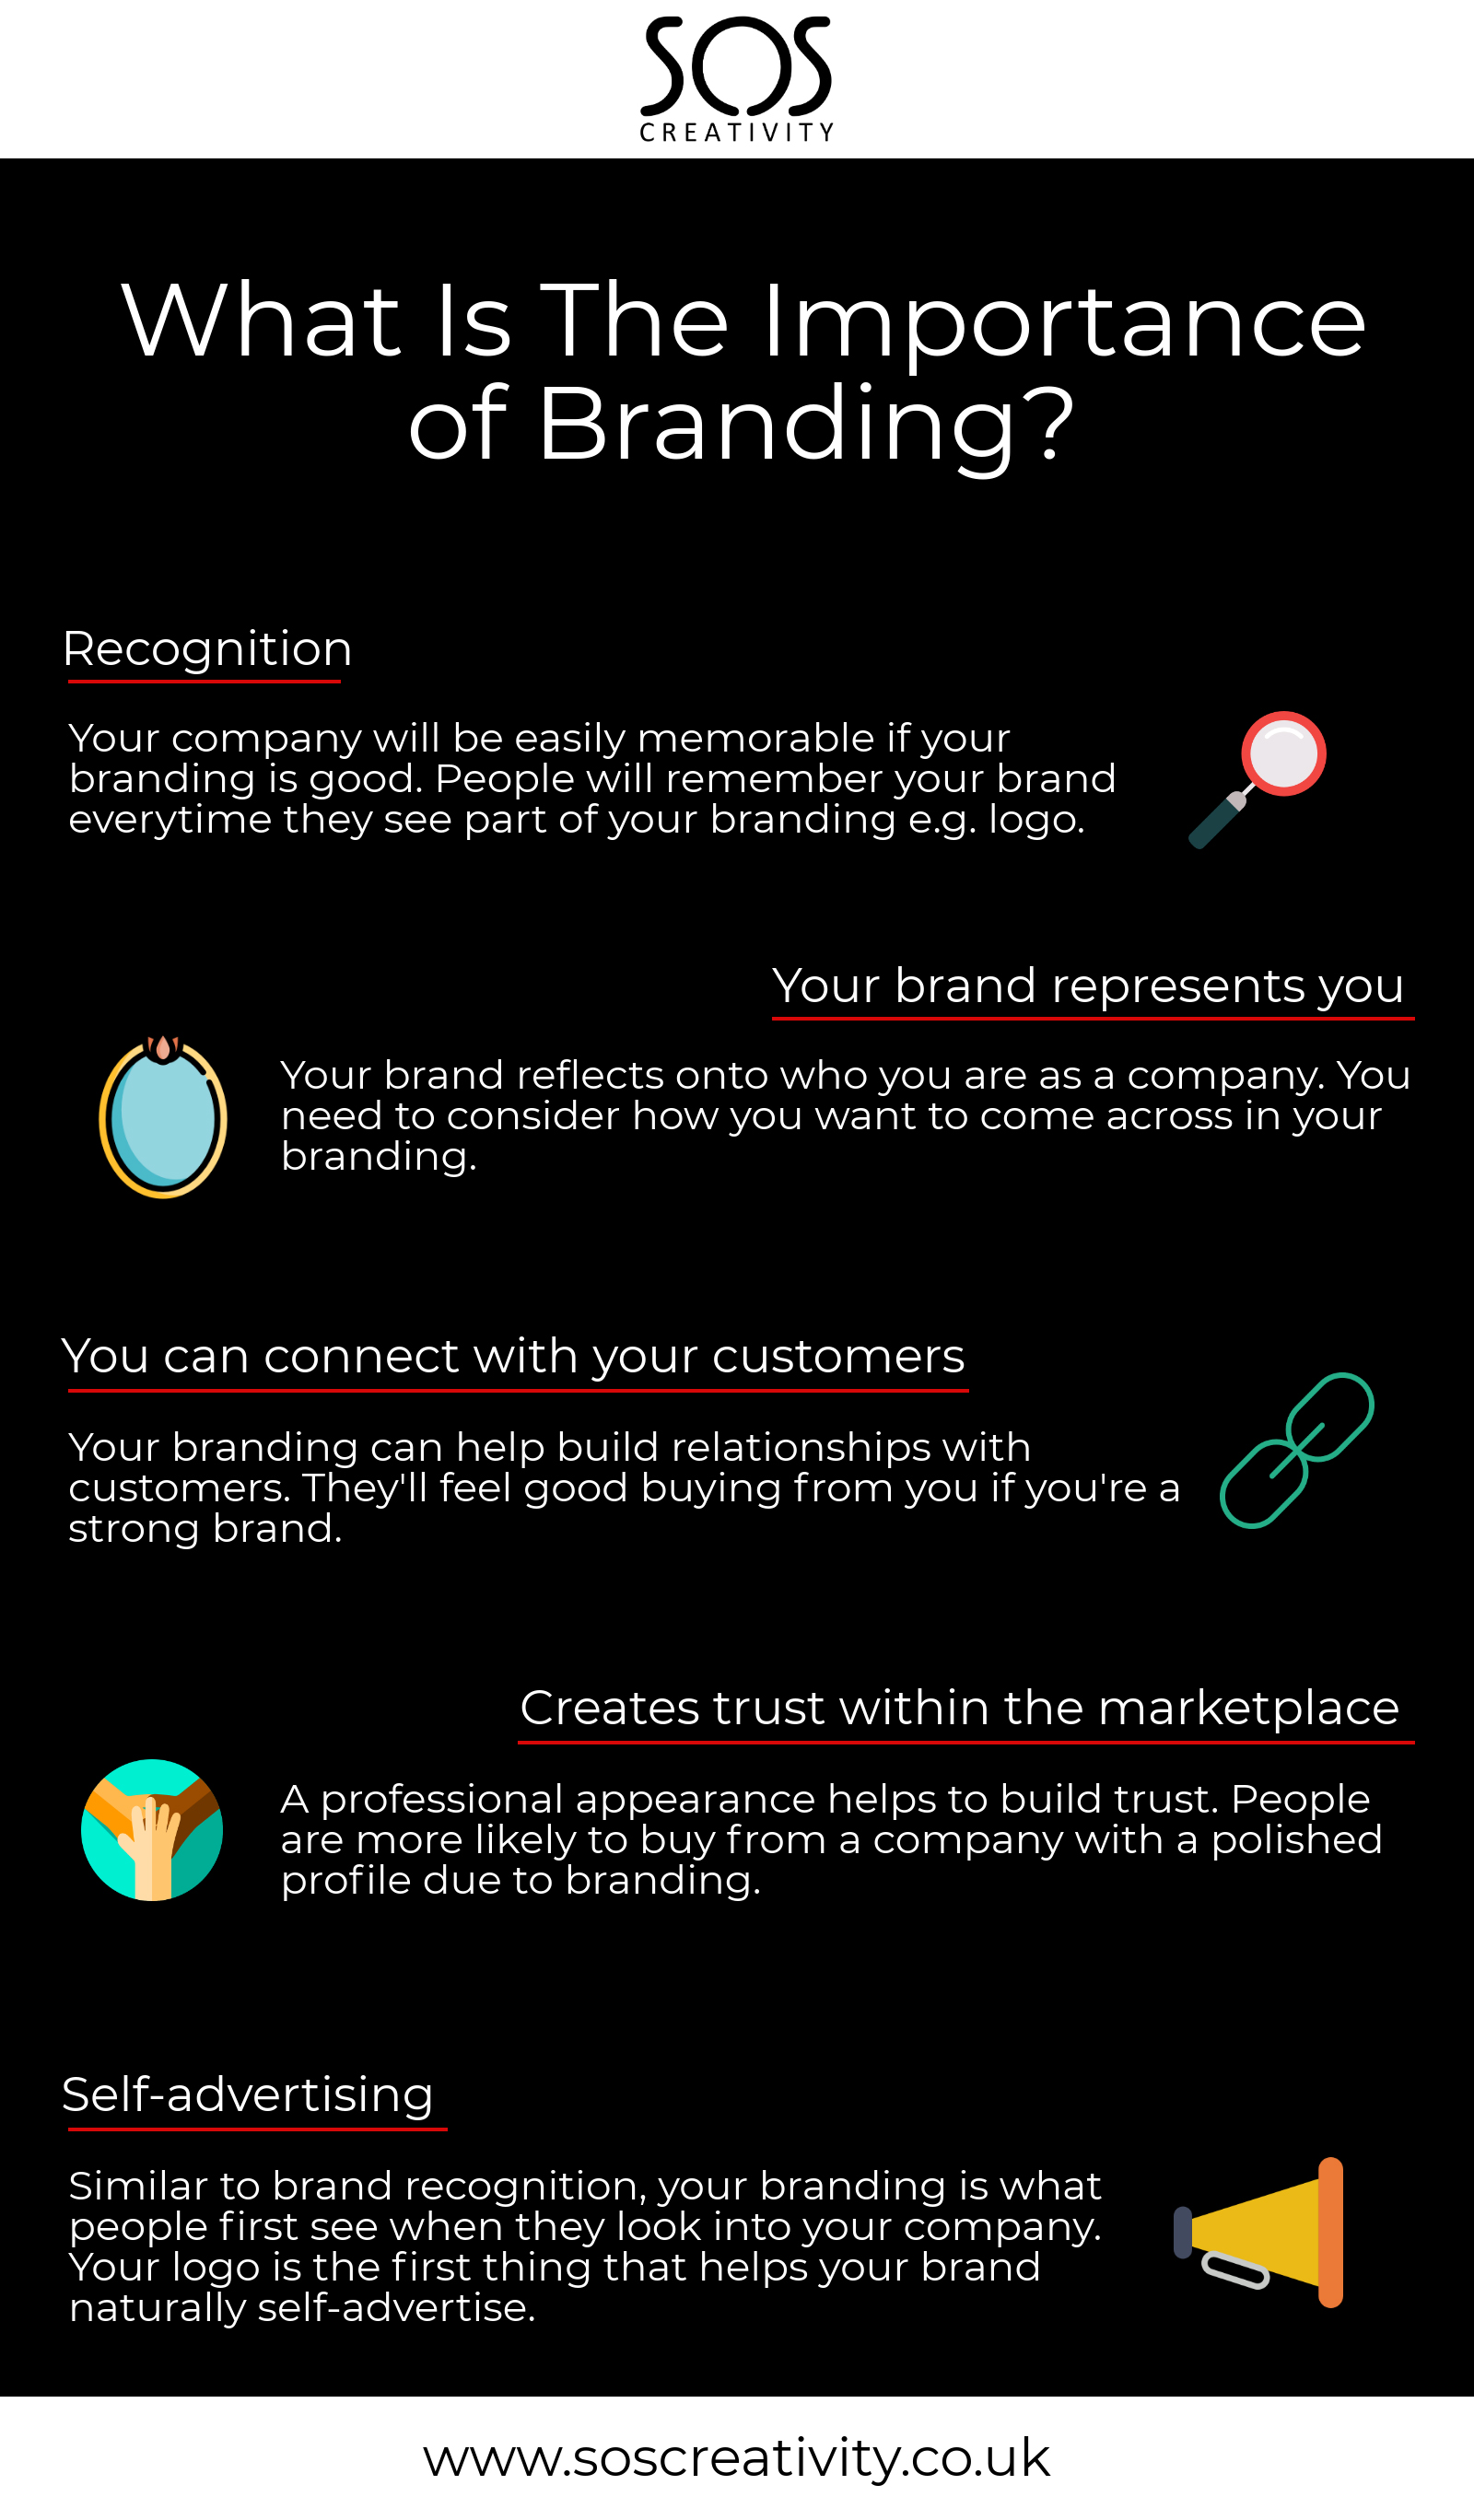 What is the importance of branding